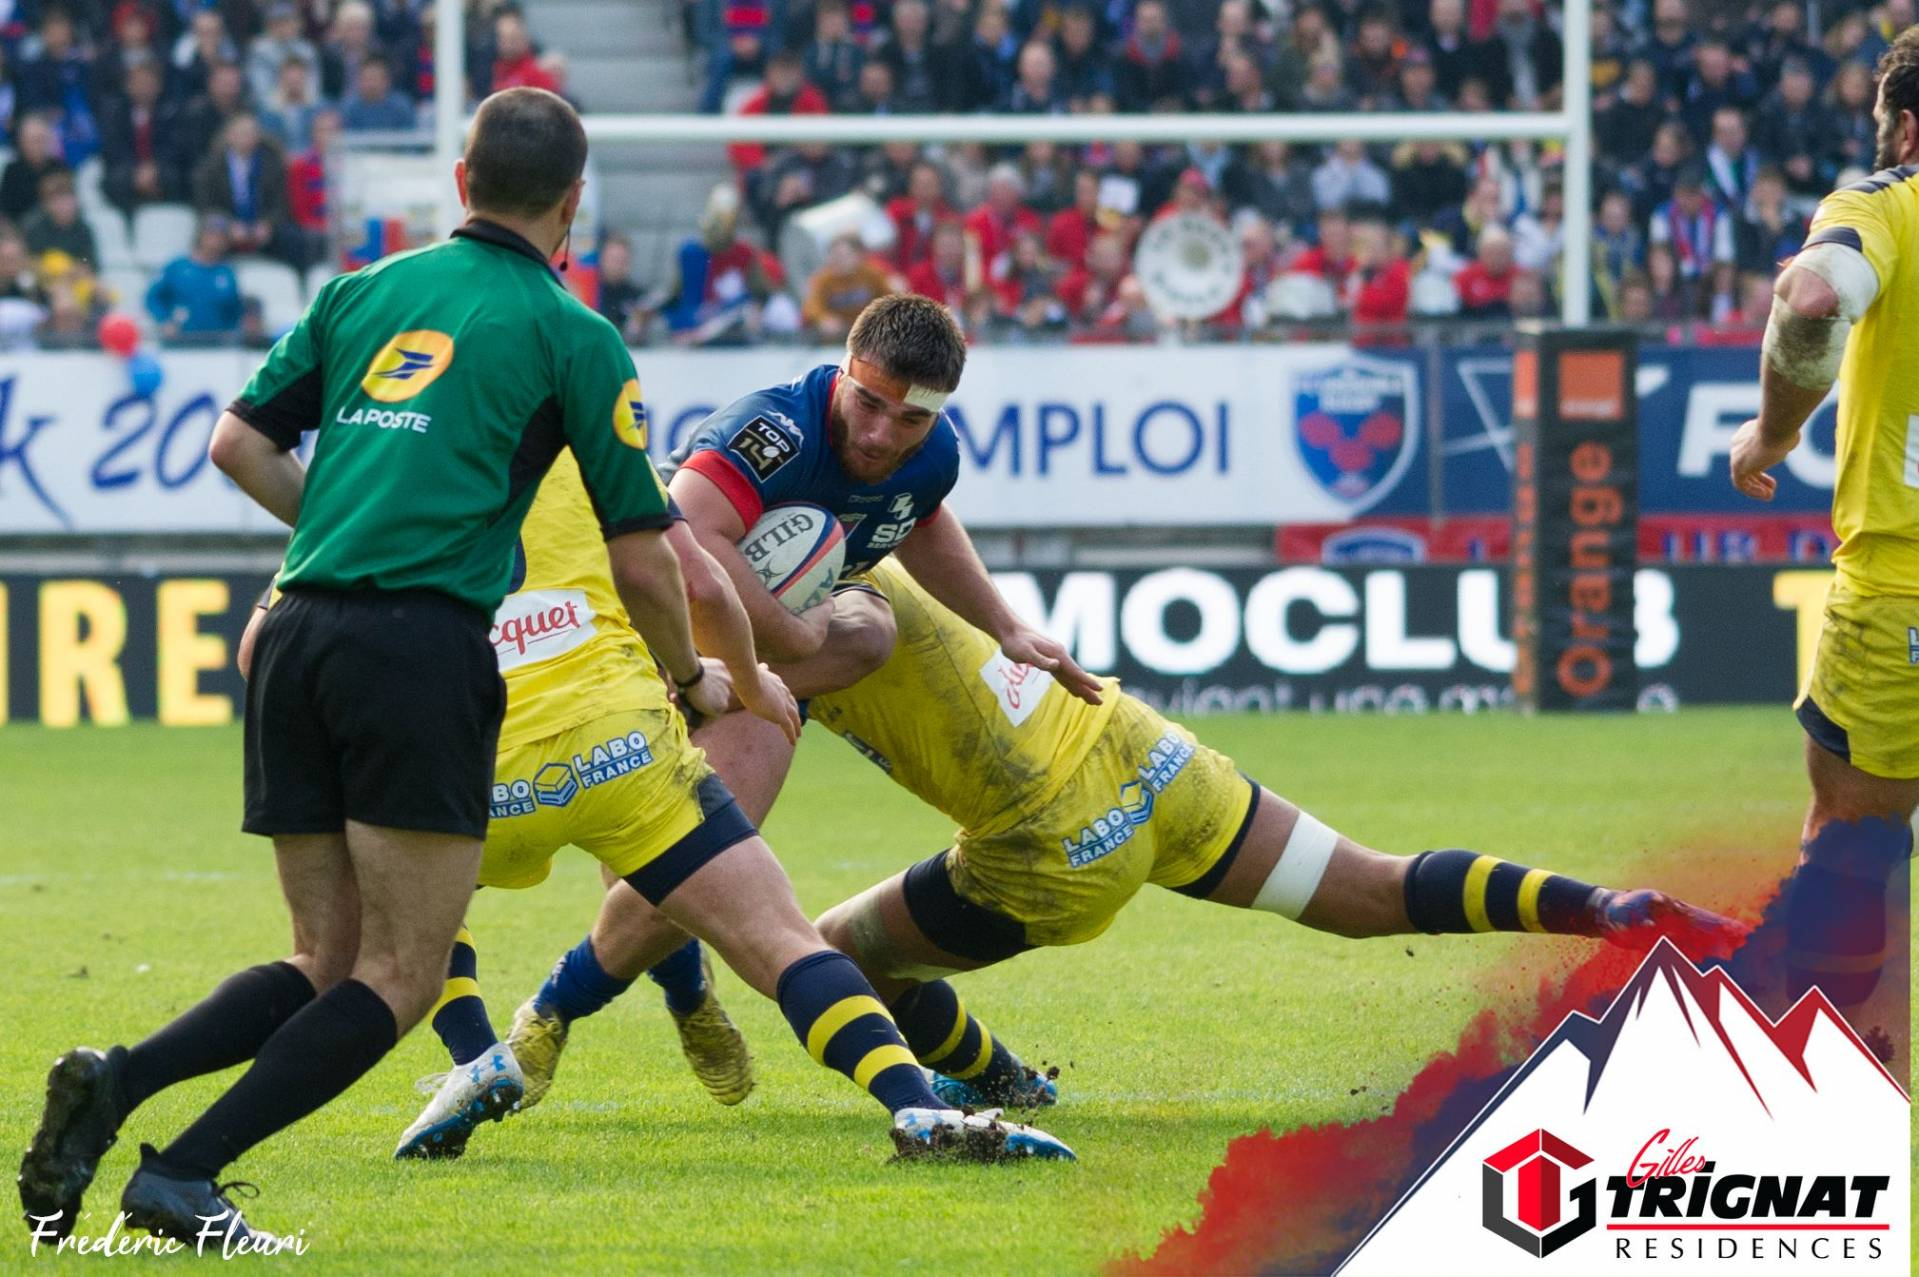 fcg - fc grenoble rugby